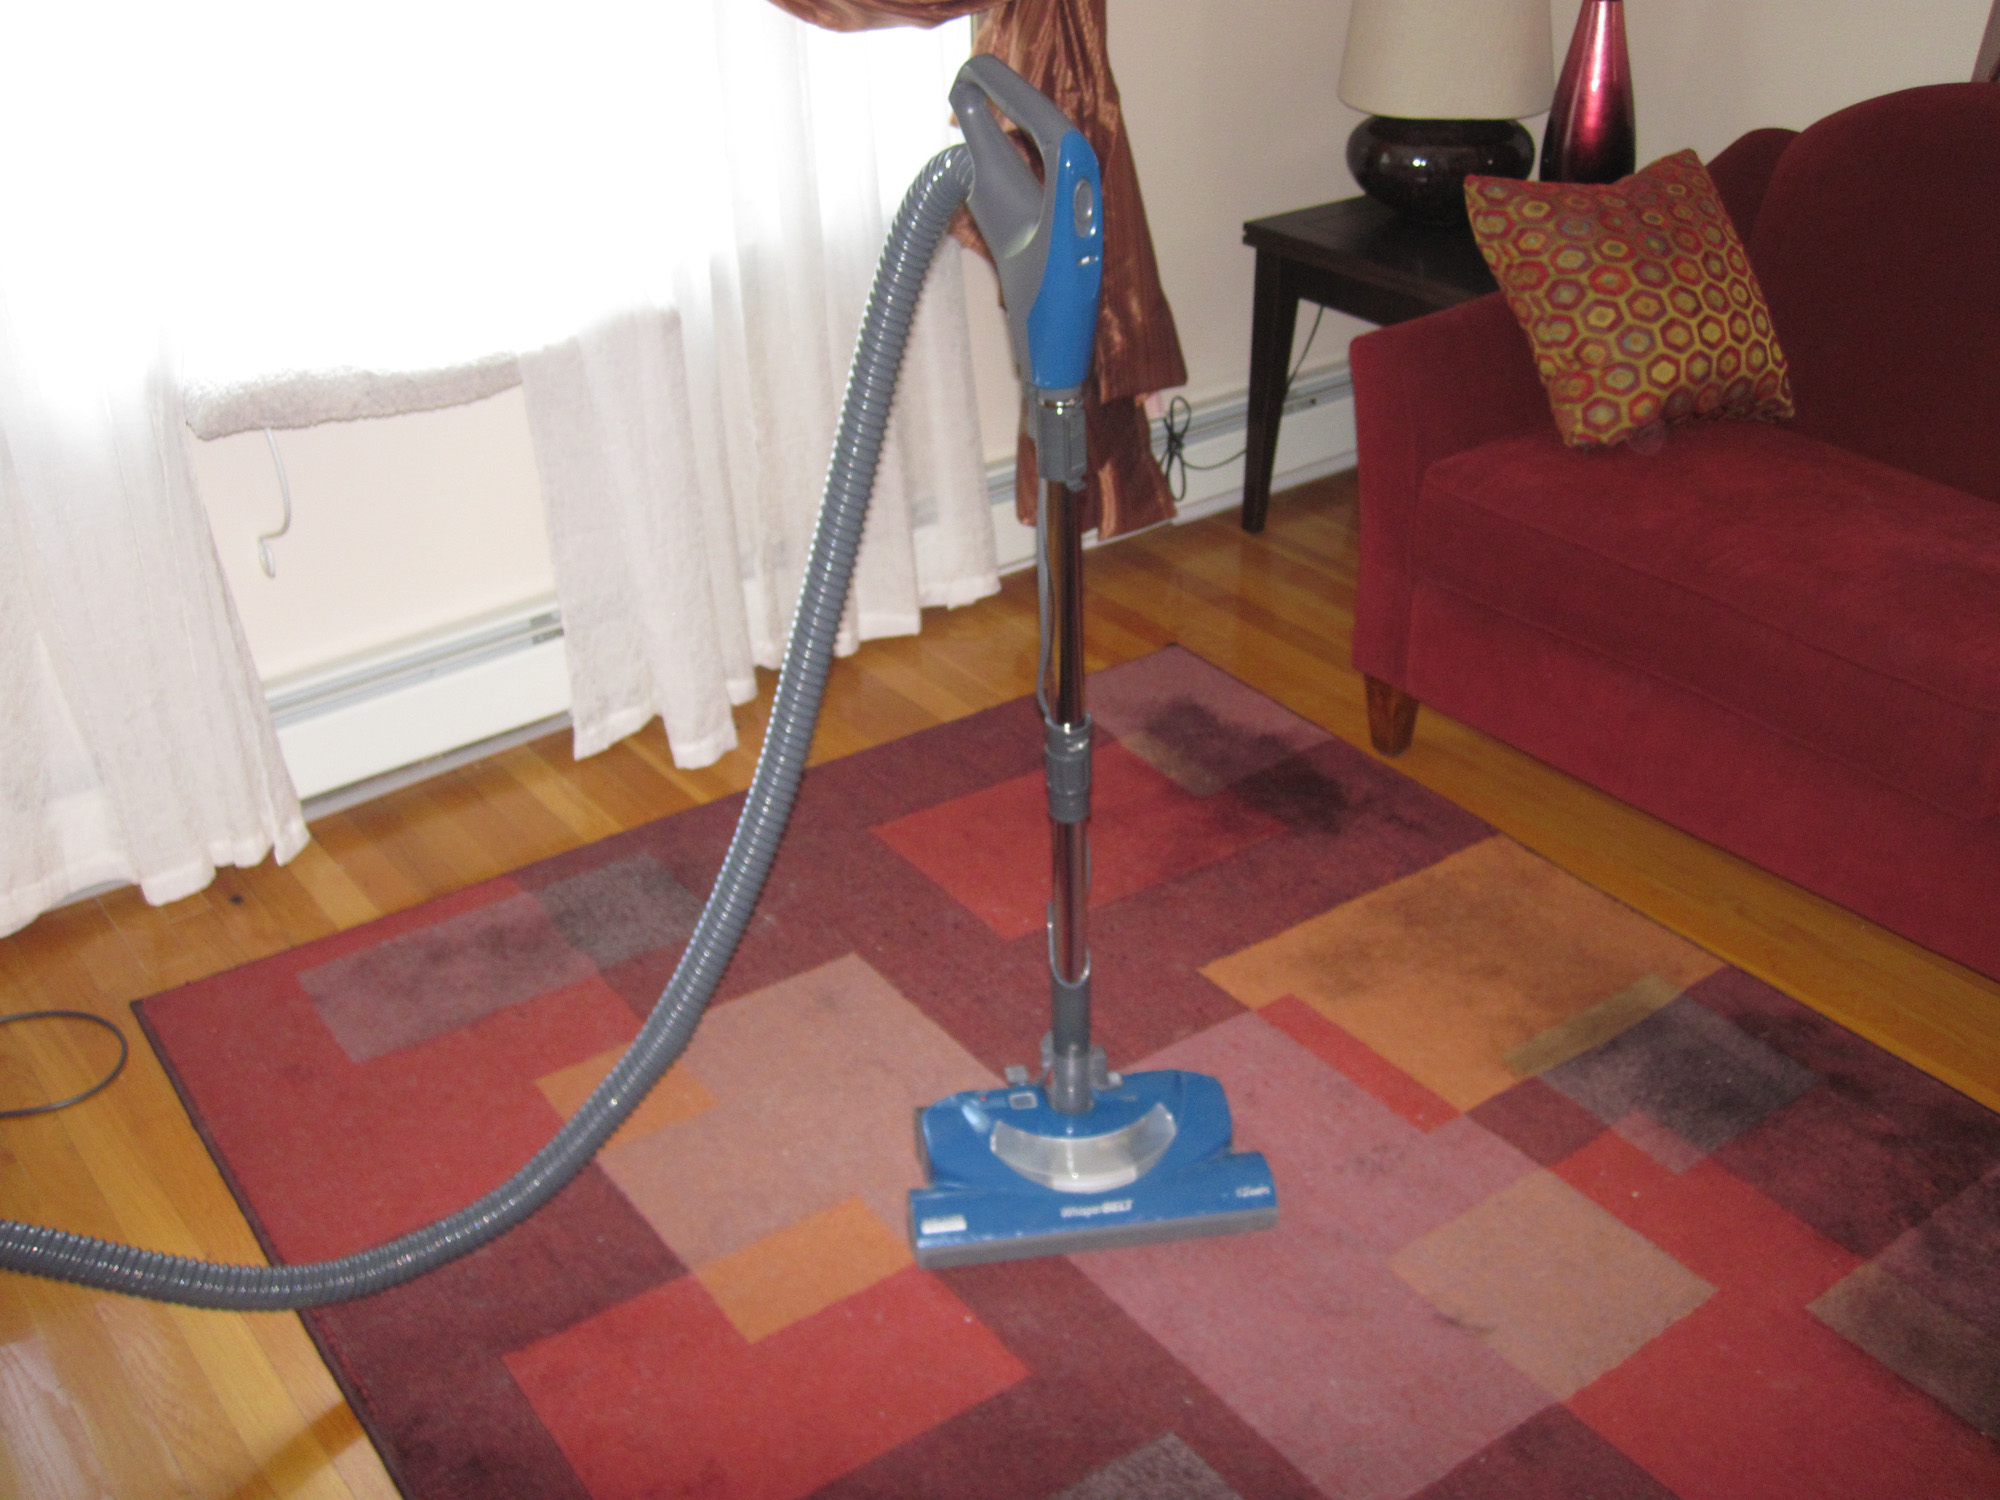 The carpets needed a good hoovering.